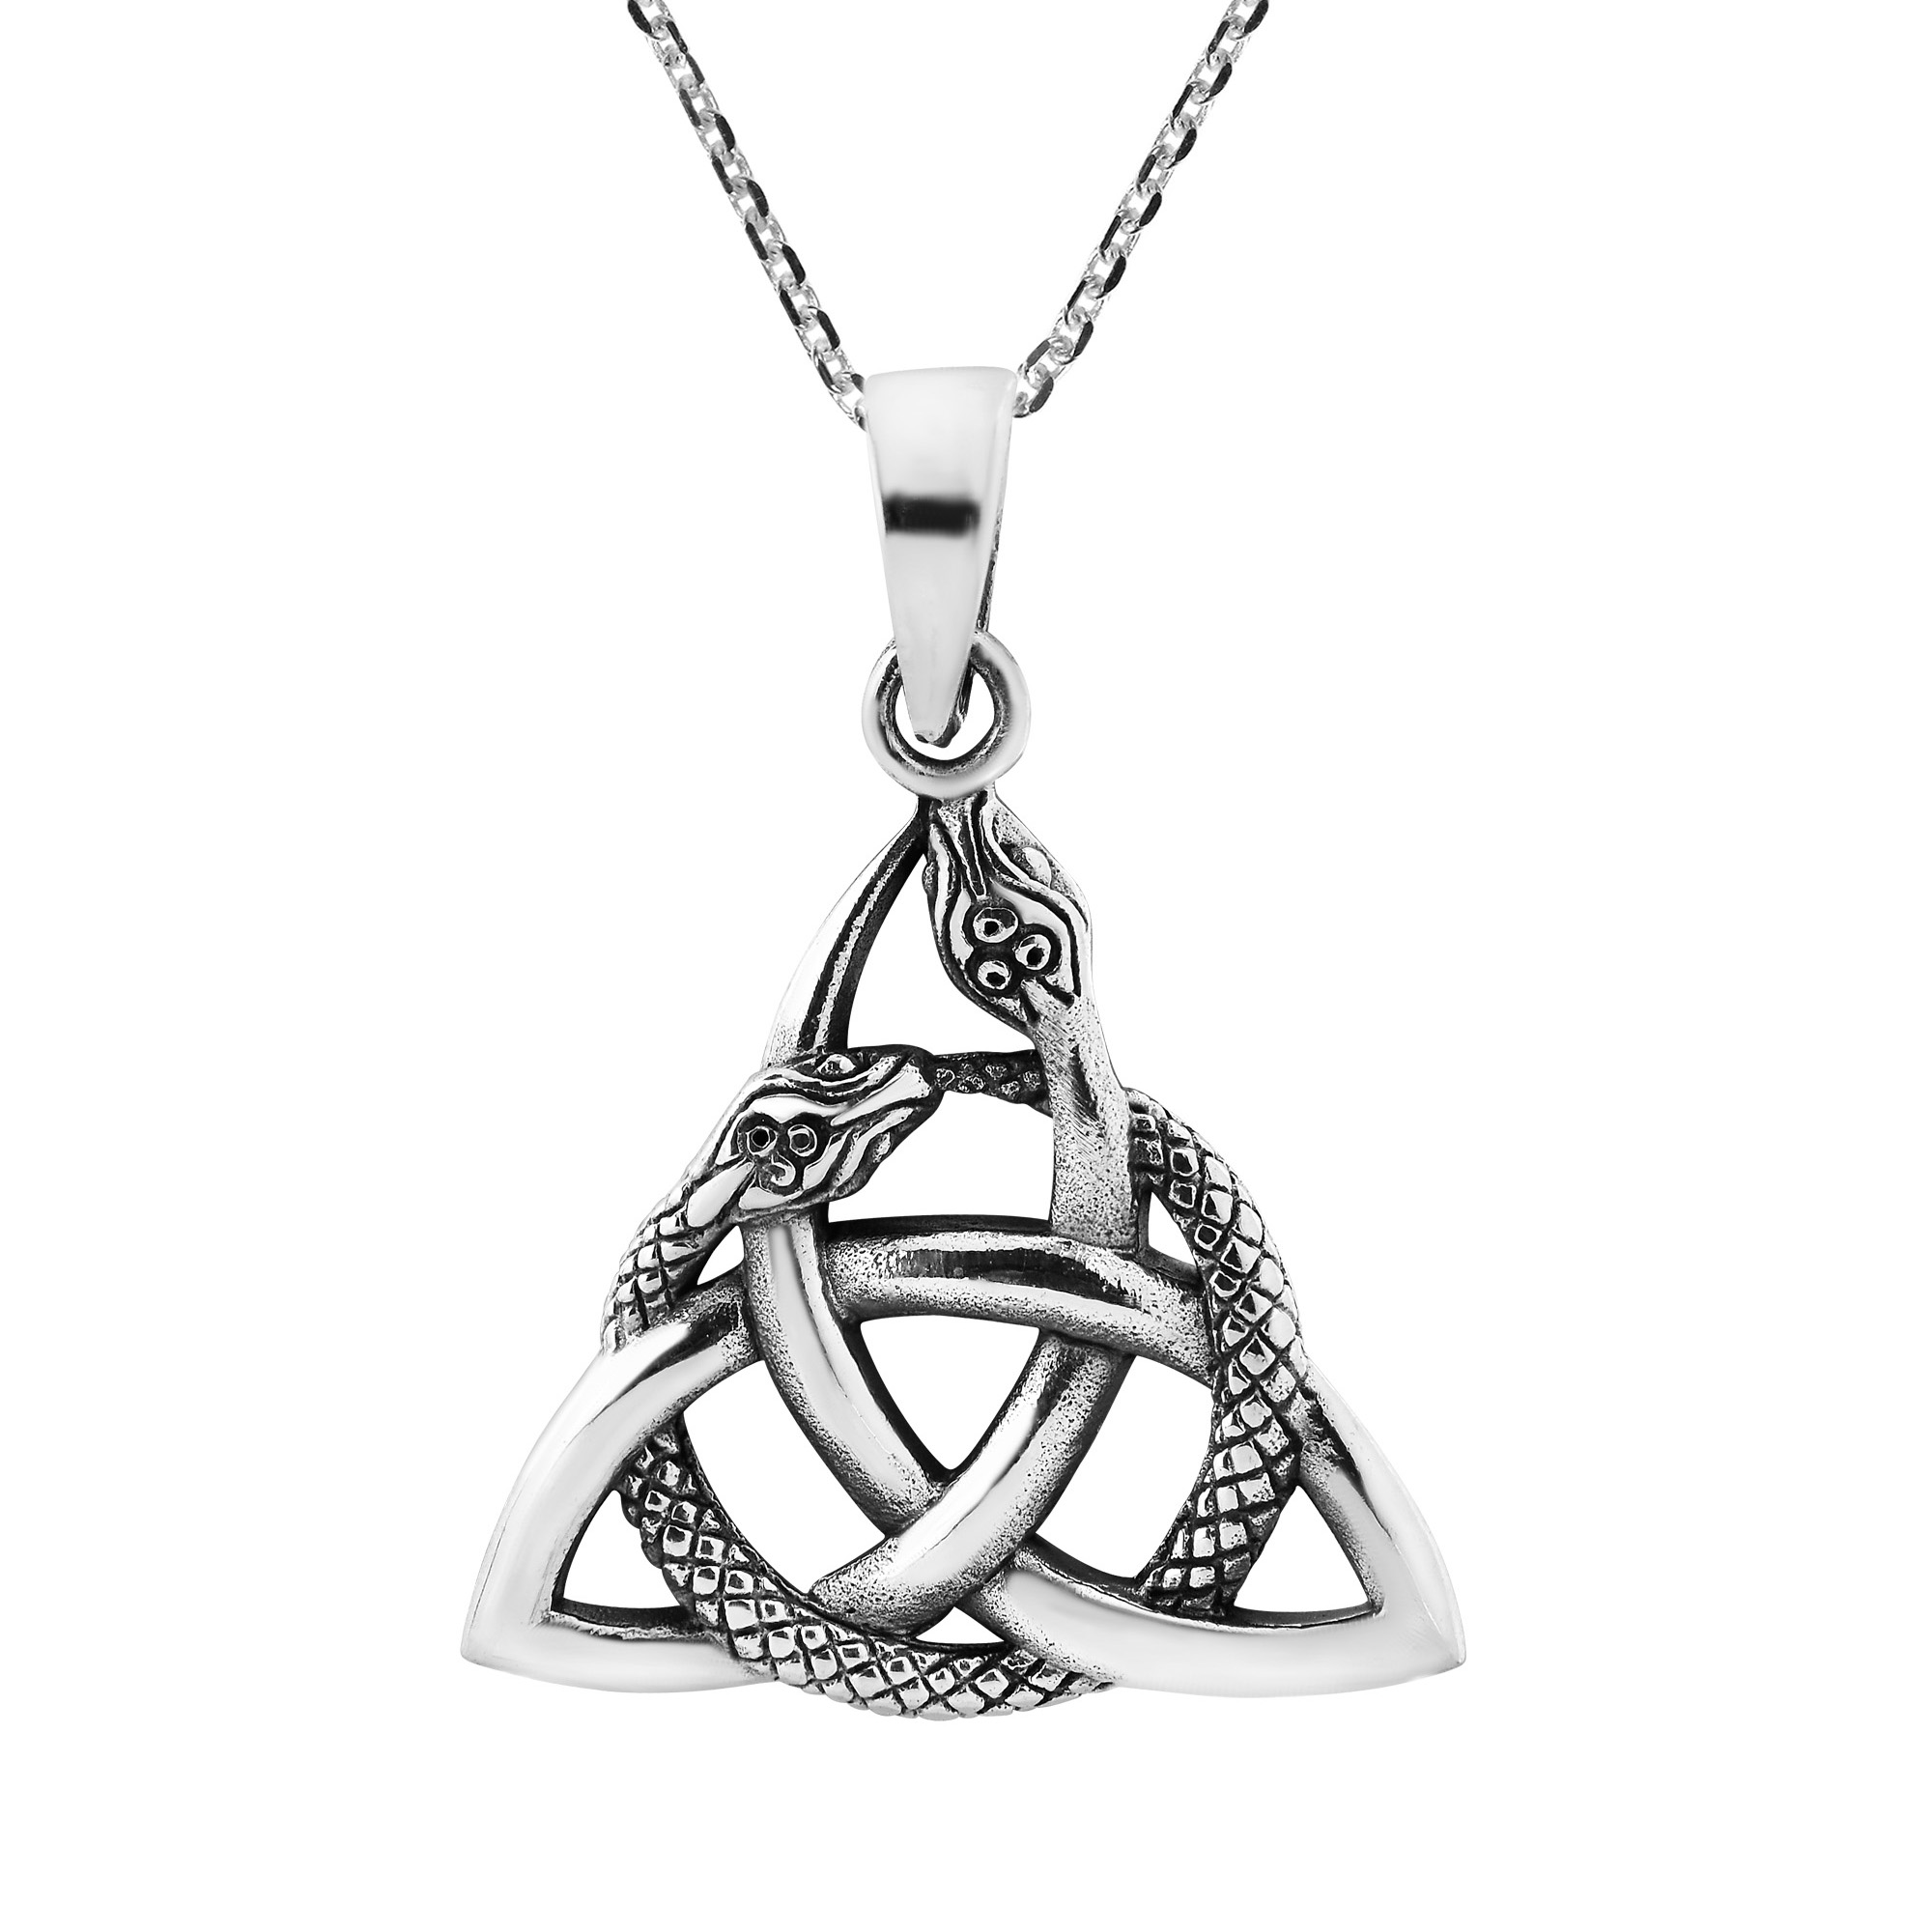 Interwoven Snakes Triquetra Or Trinity Knot Sterling Silver Necklace